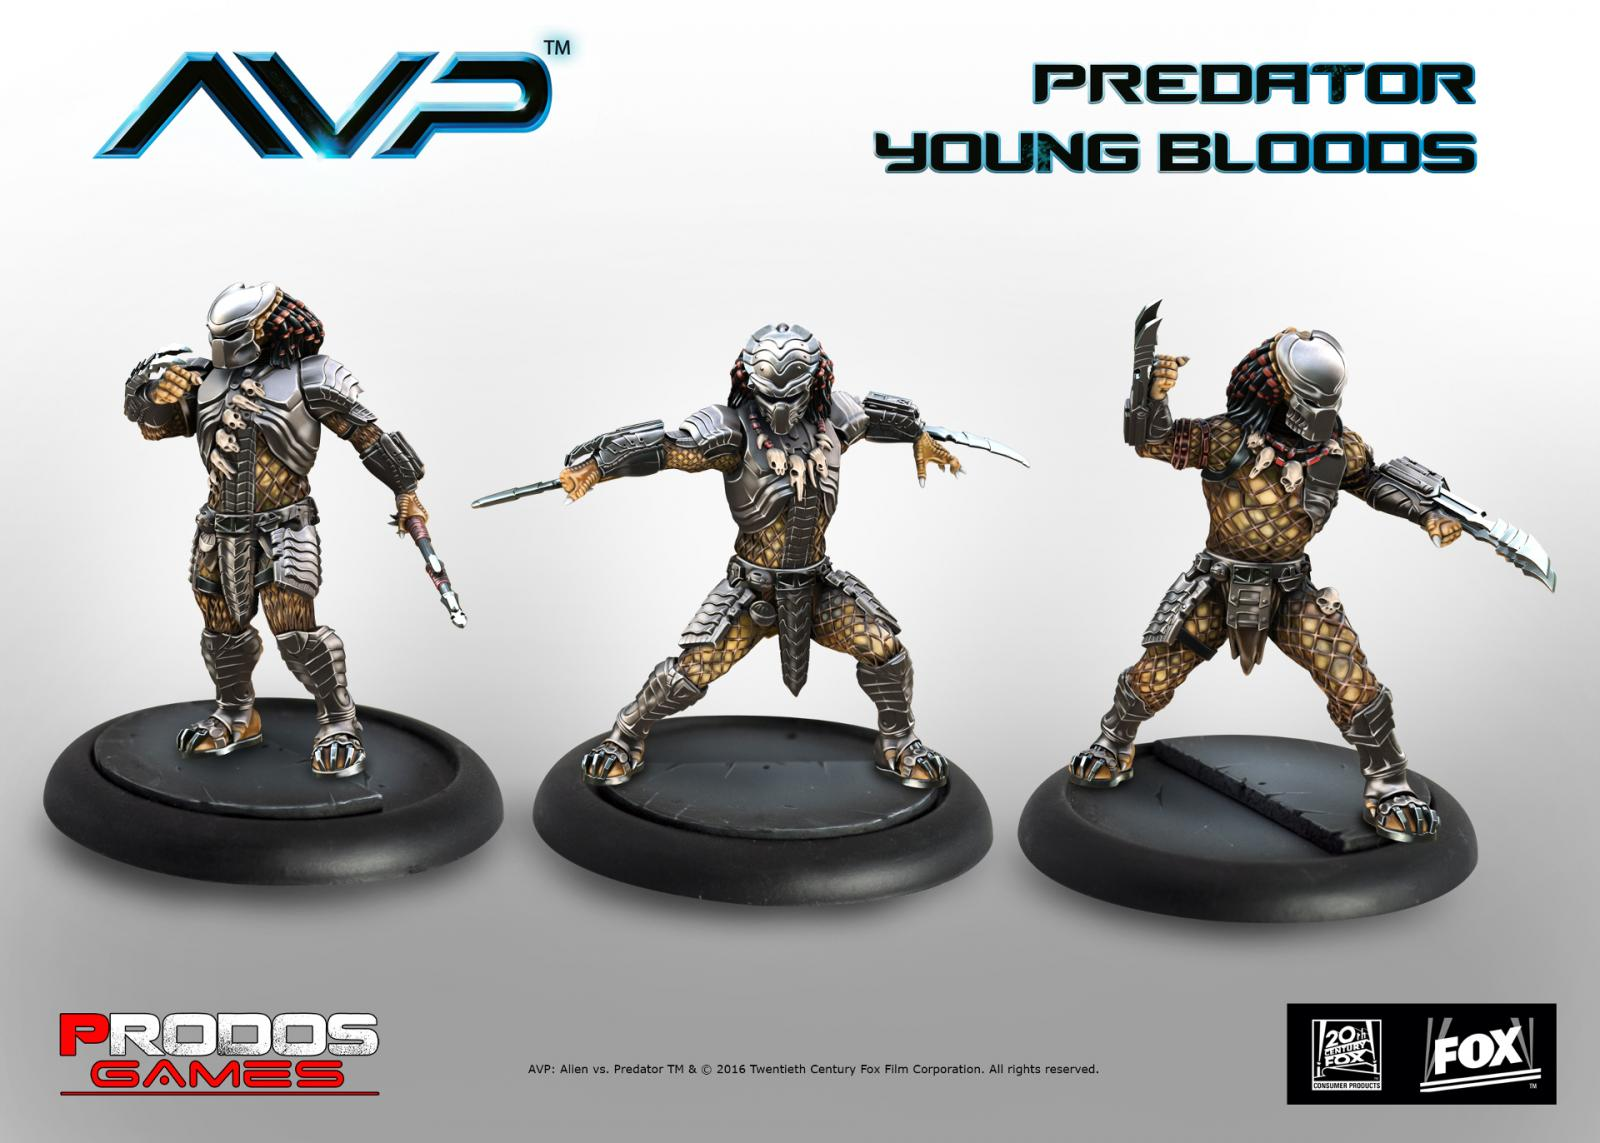 Alien vs Predator: Young Bloods